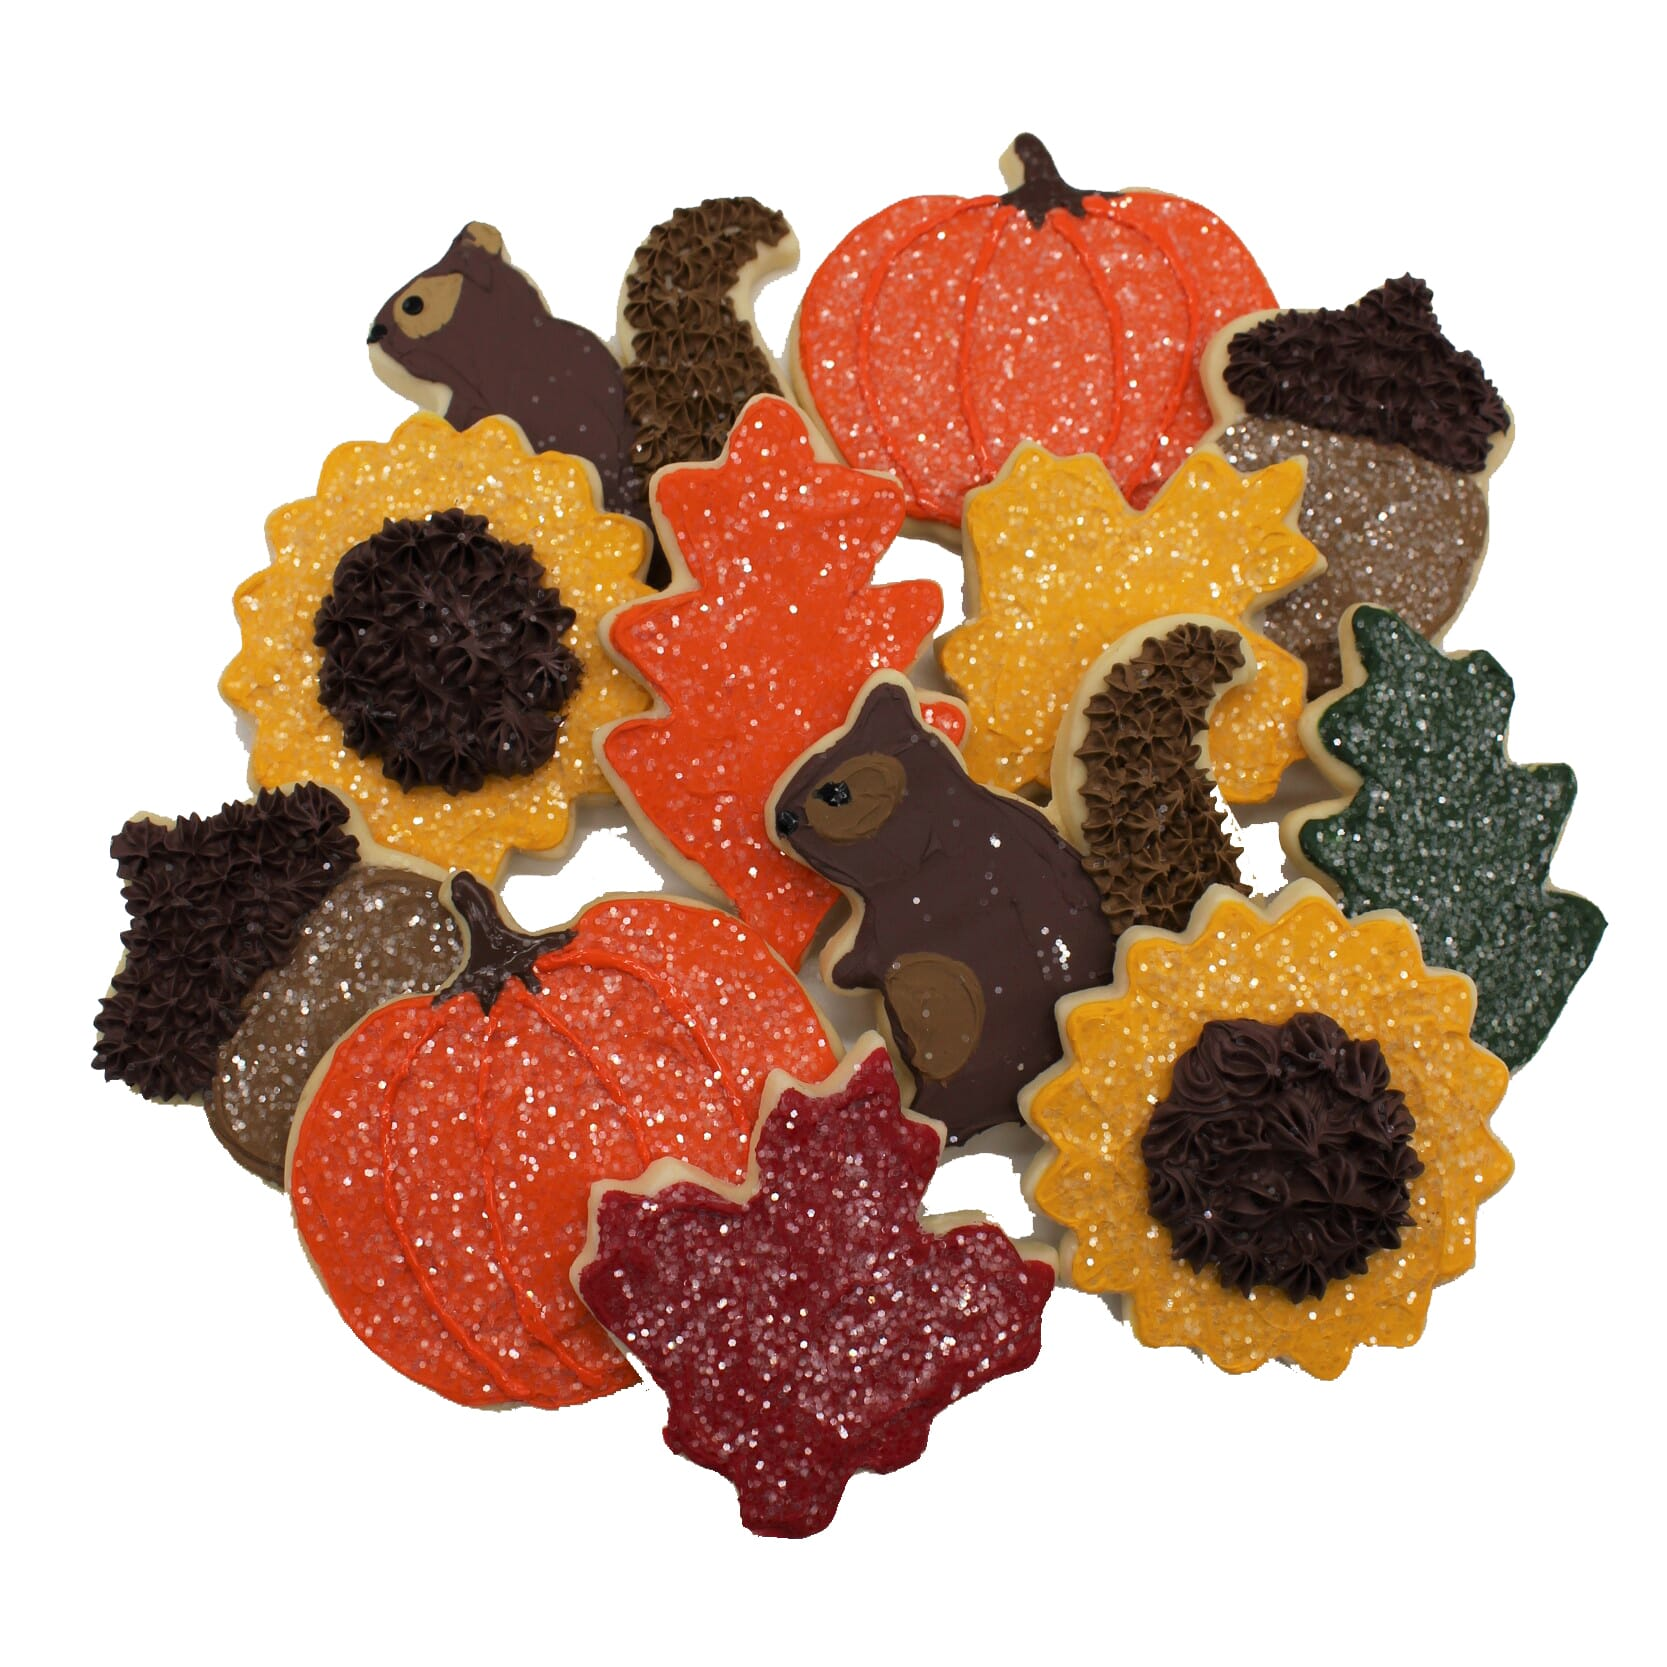 Fake Fall Cookies (1 dozen)